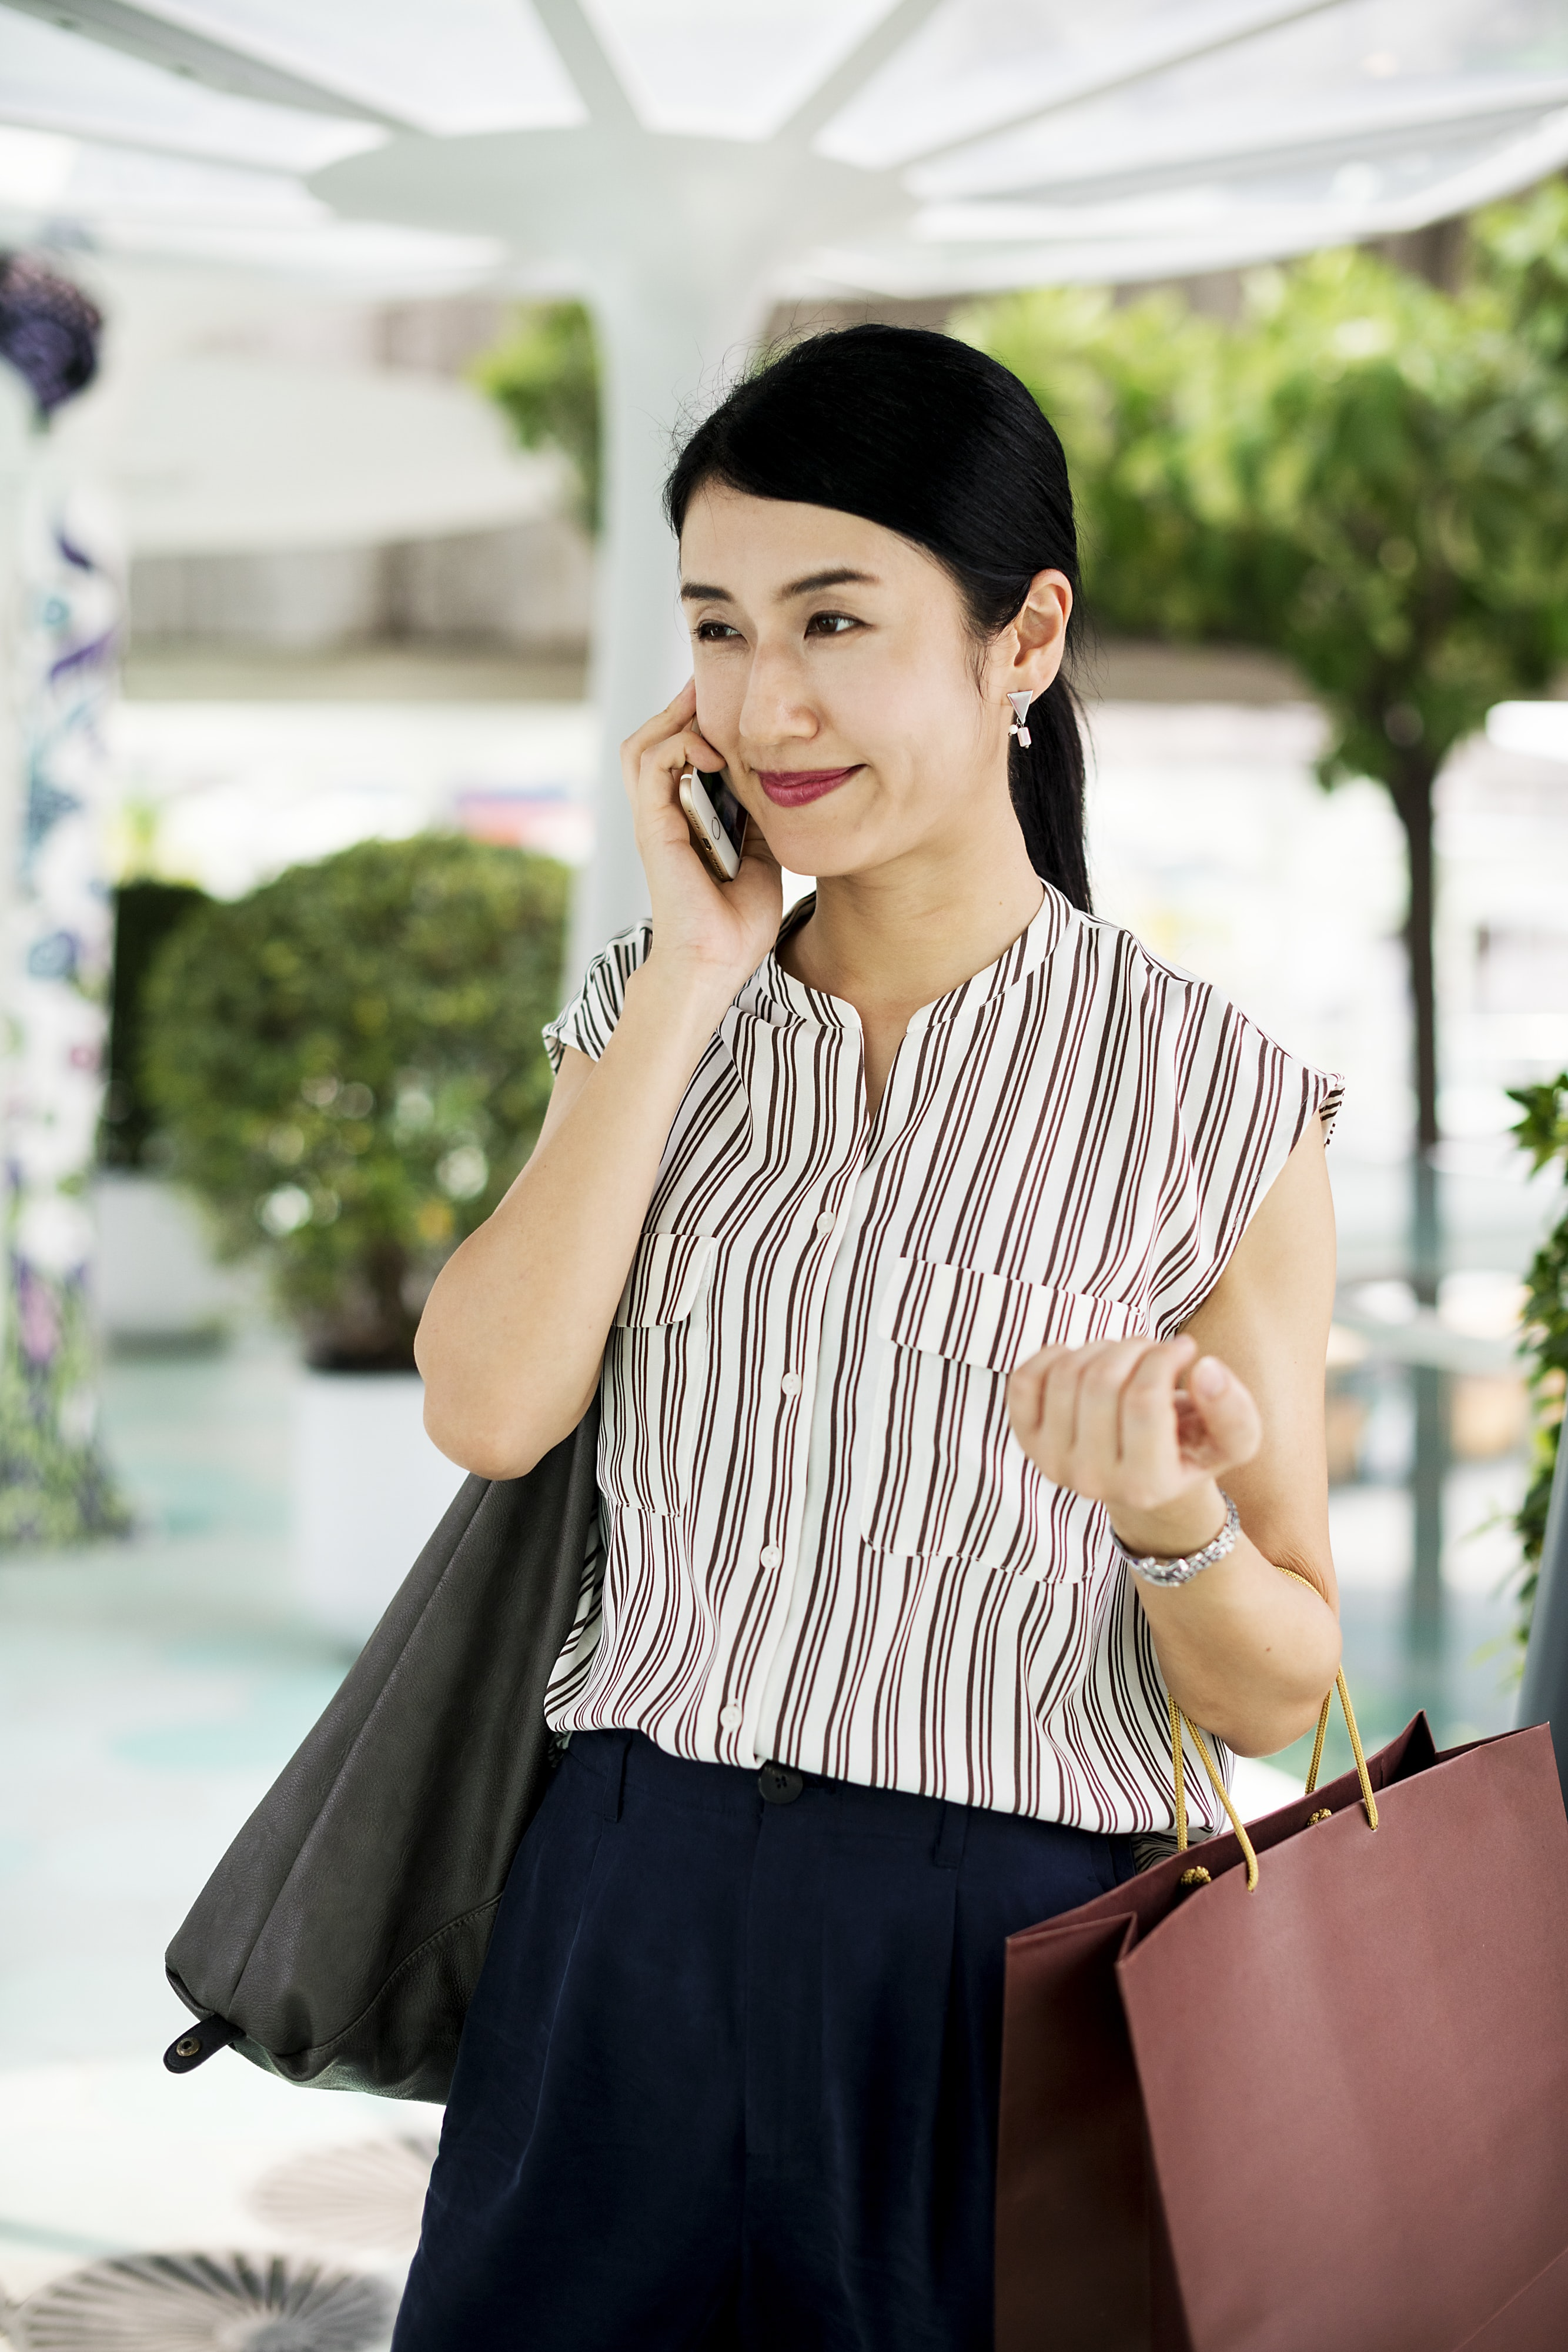 woman taking a call using gold iPhone 6